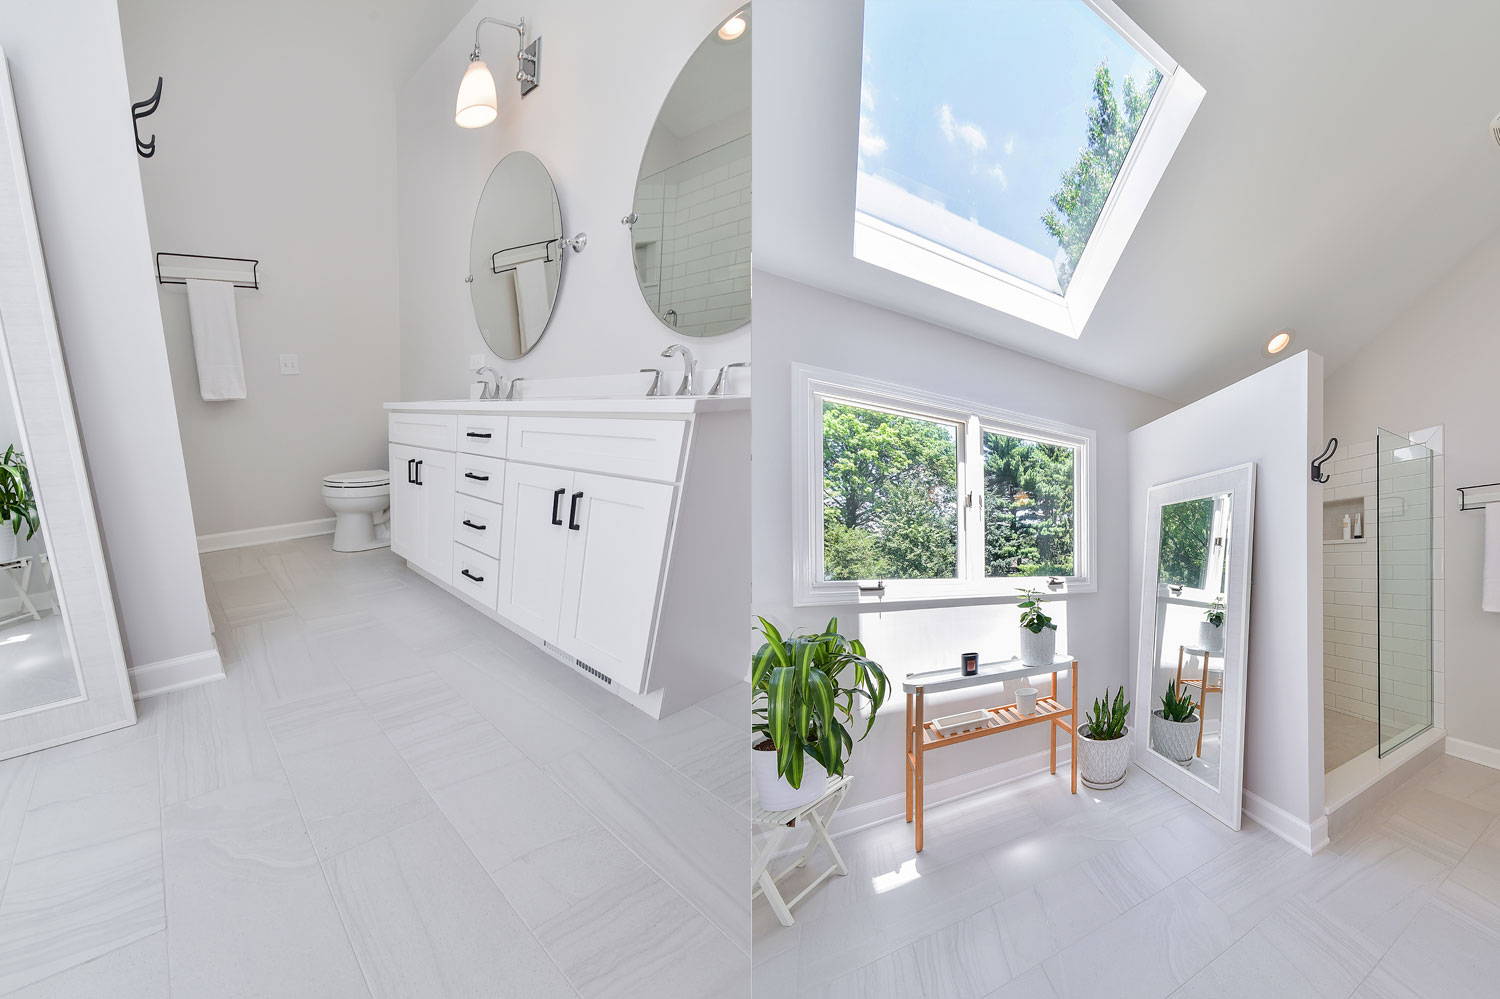 Brad & Lea\'s Master Bathroom Remodel Pictures   Home Remodeling ...